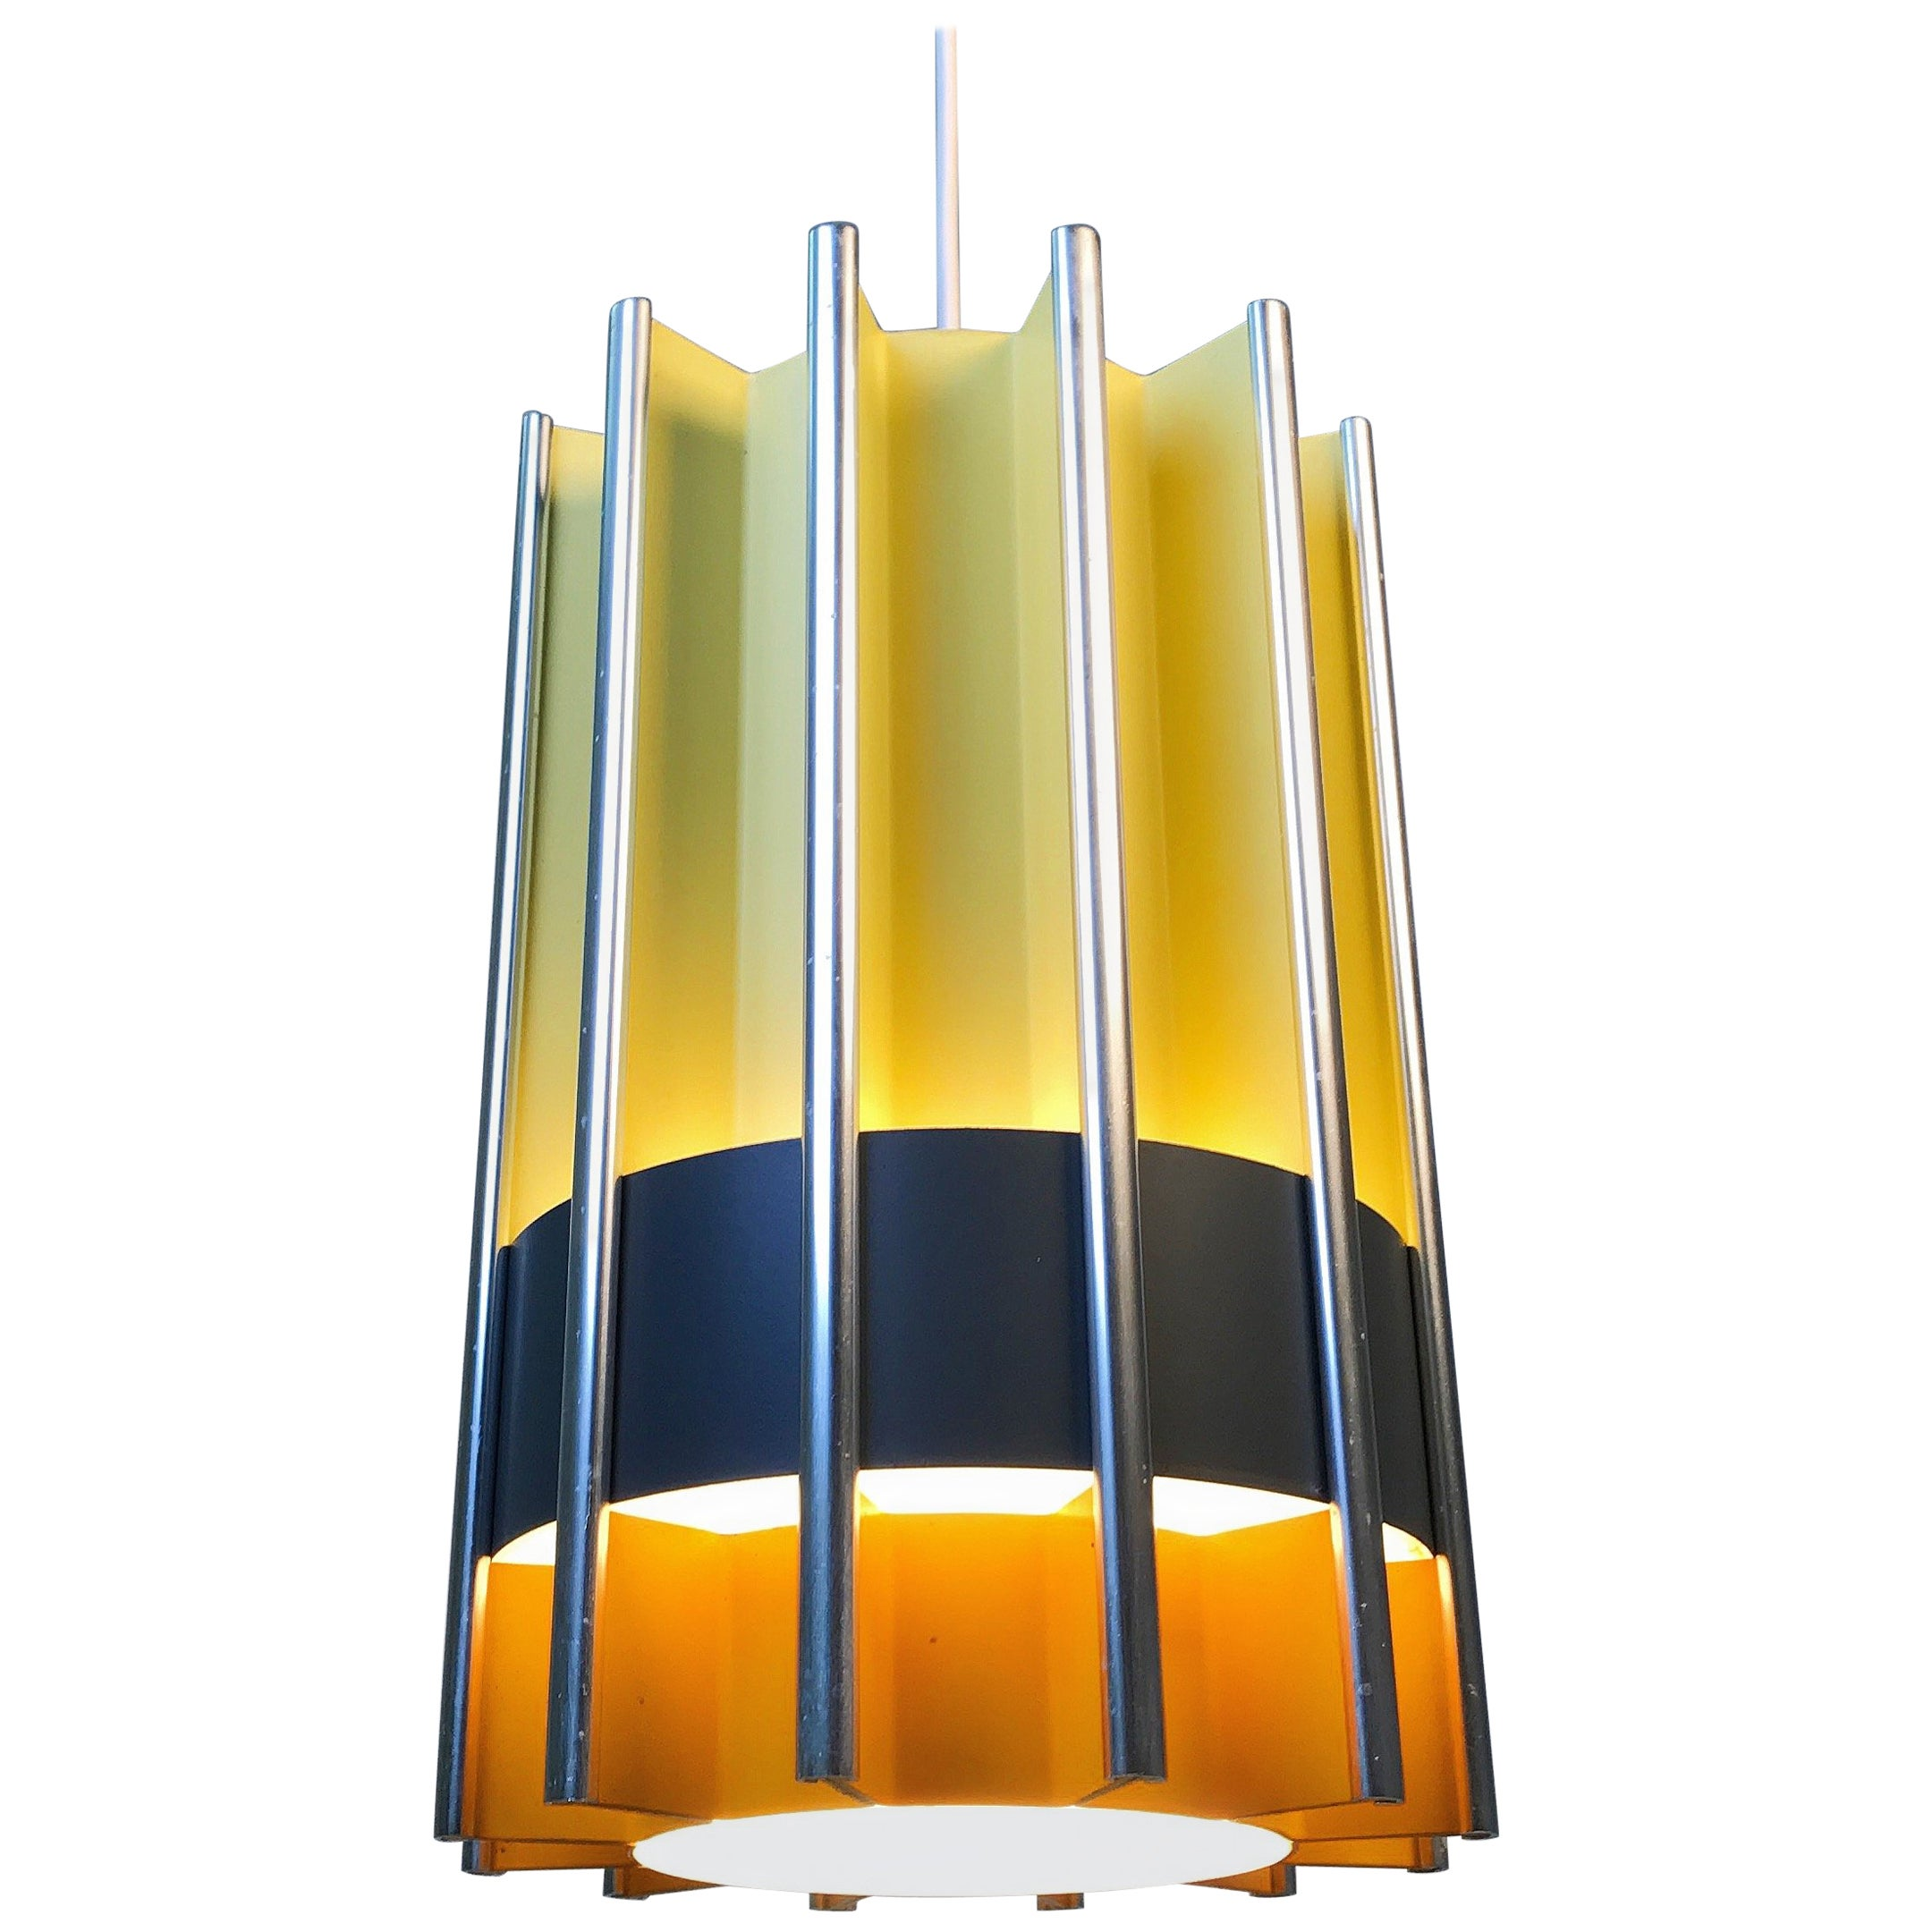 Rare Ceiling Pendant by Bent Karlby for Lyfa, Mid-1960s, Denmark